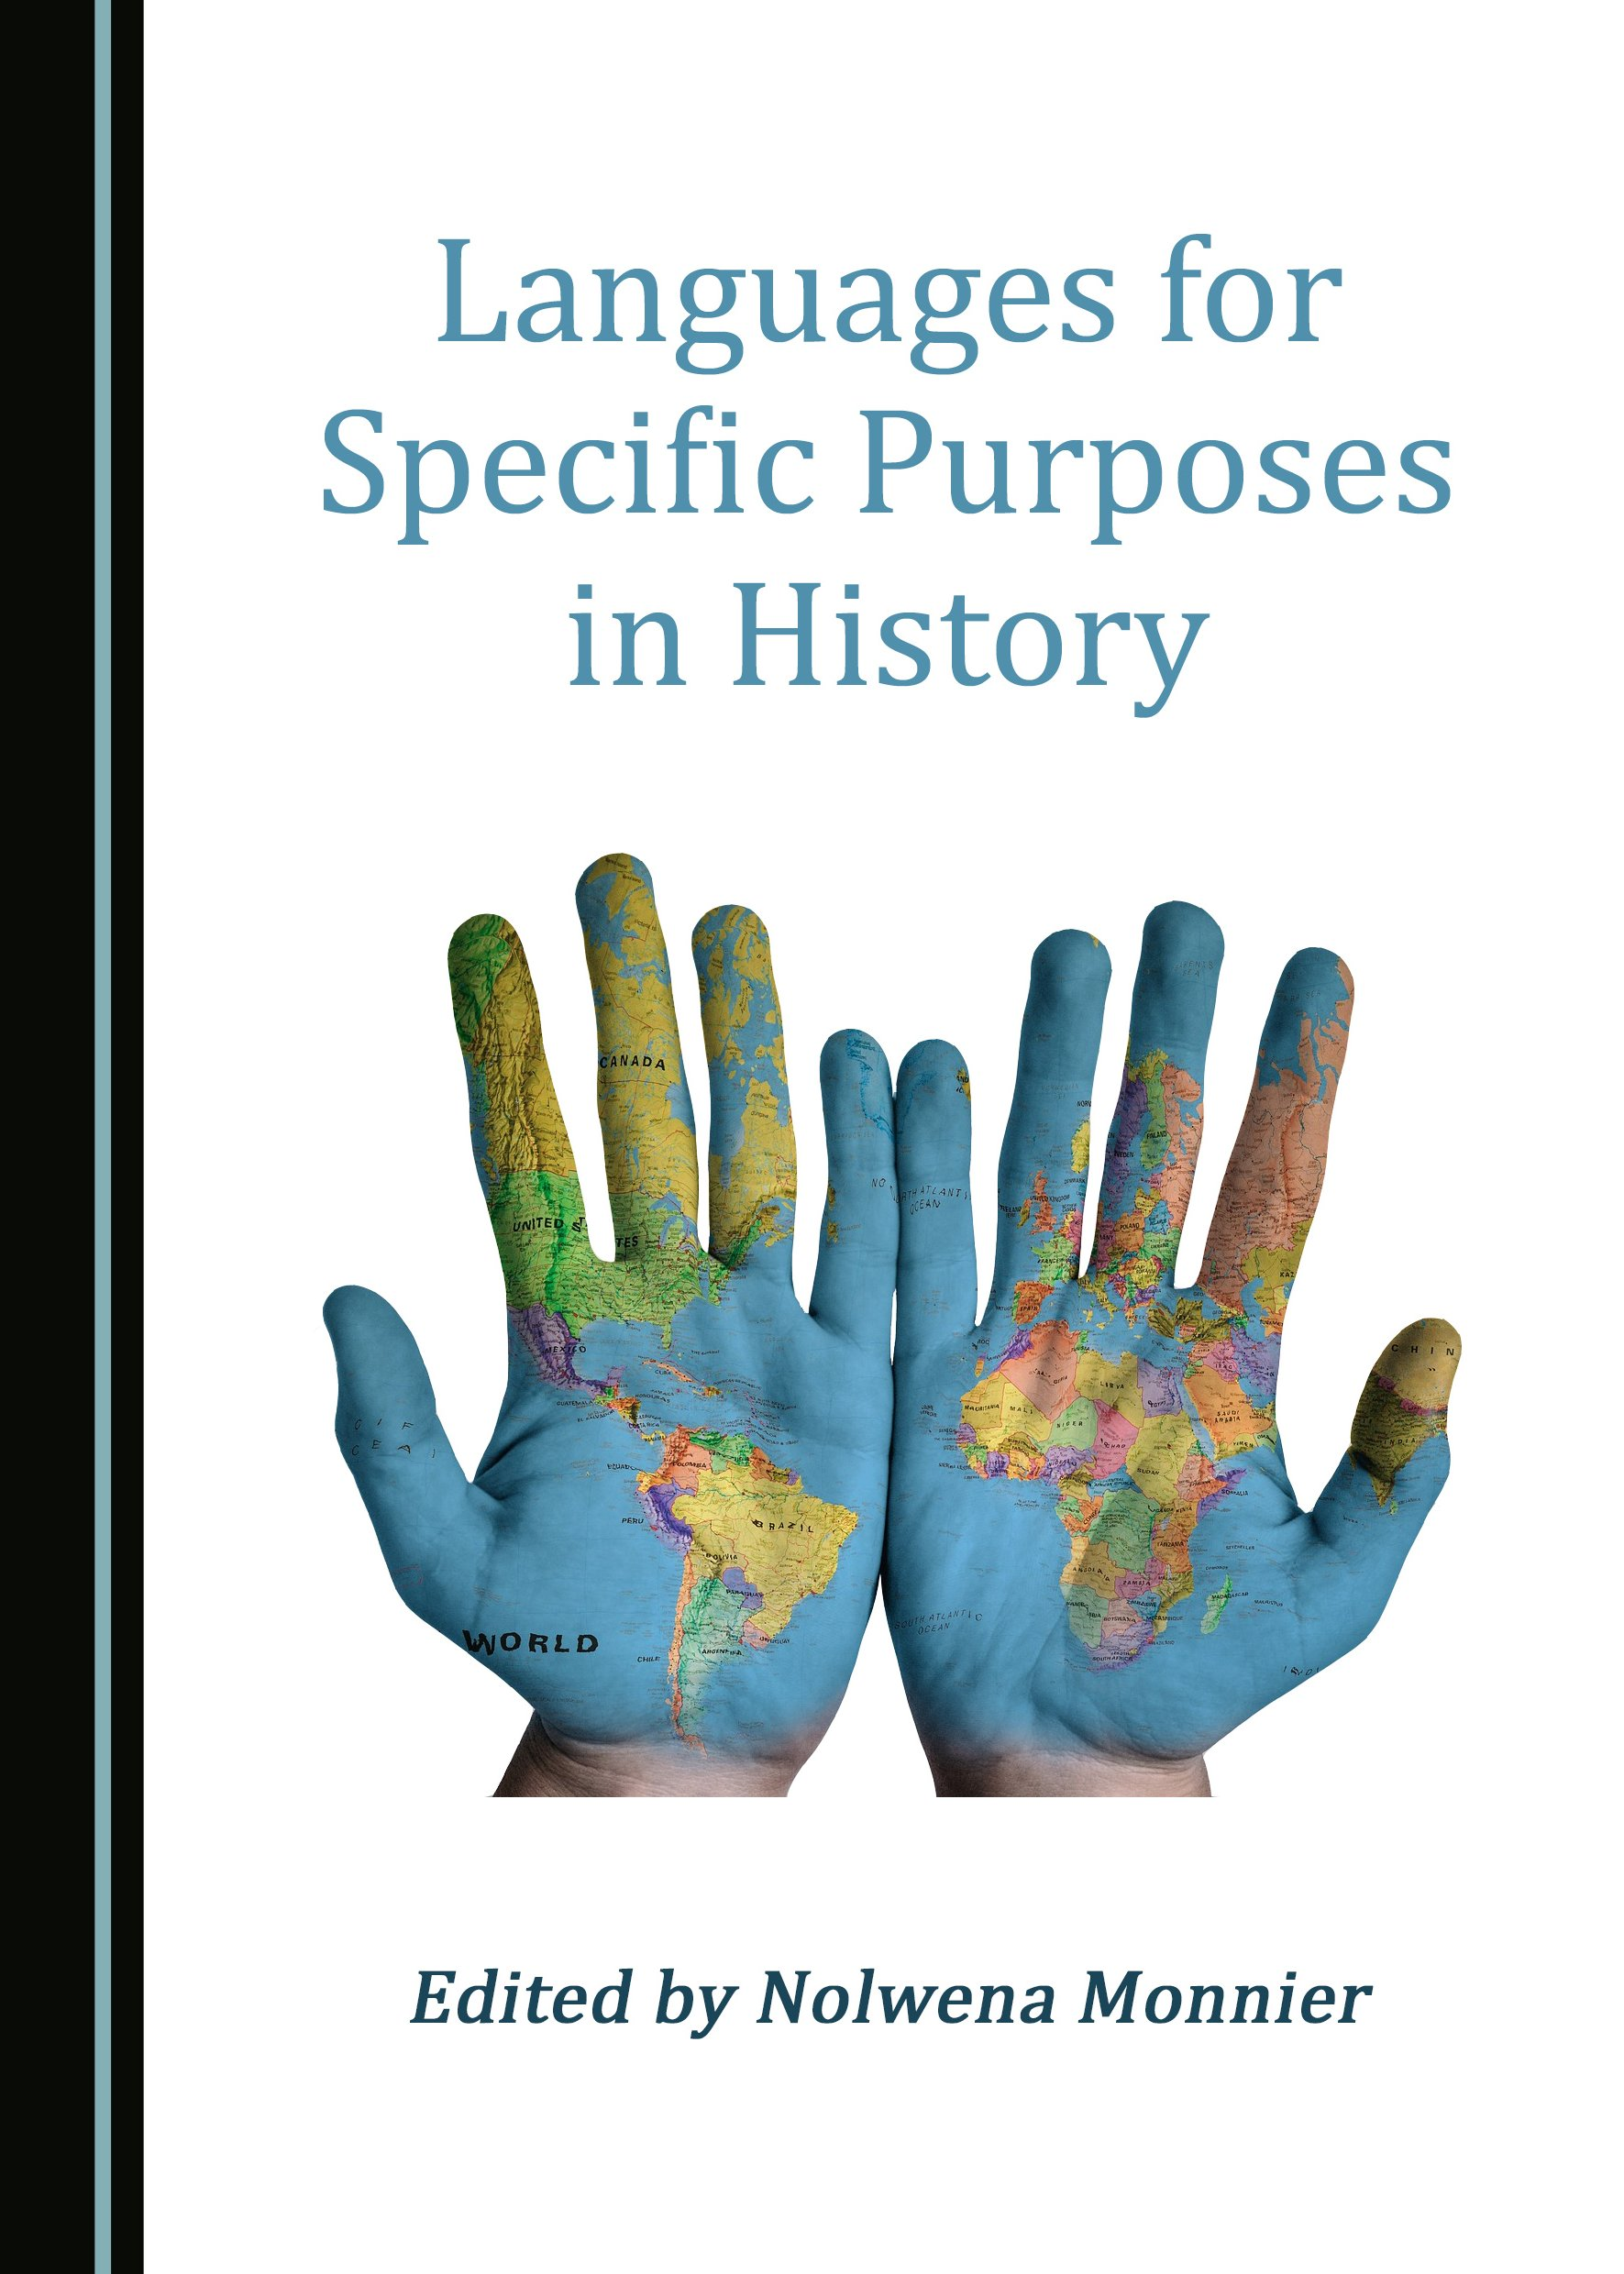 Languages for Specific Purposes in History